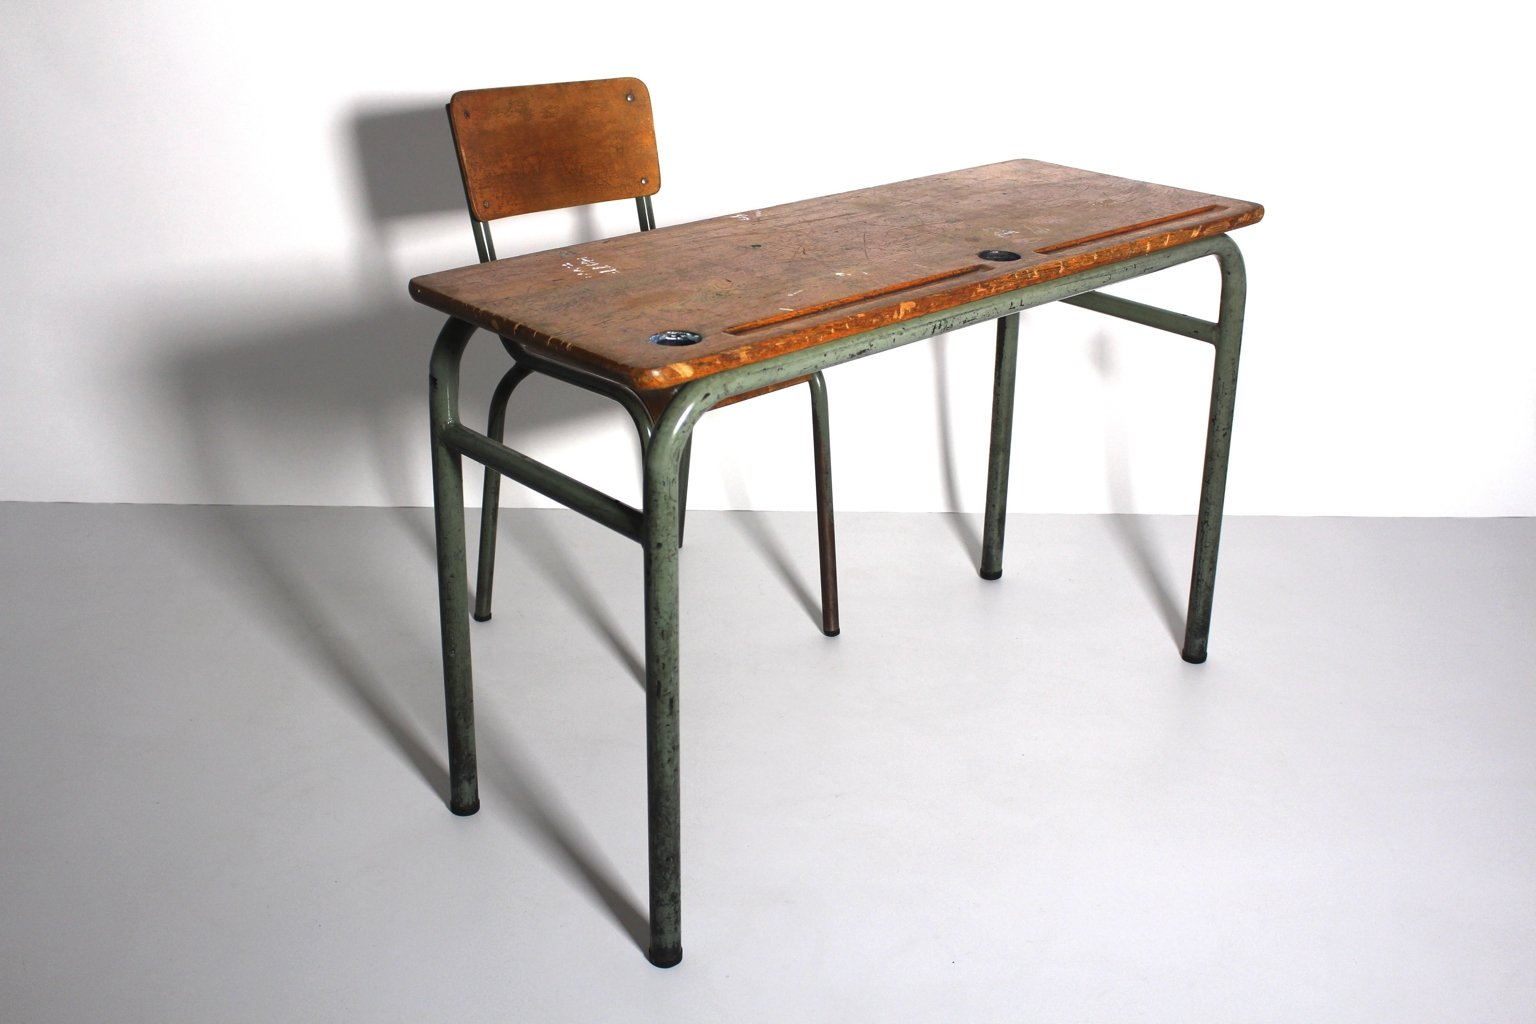 Industrial Look Chairs Vintage Industrial Style Desk And Chair 1940s Set Of 2